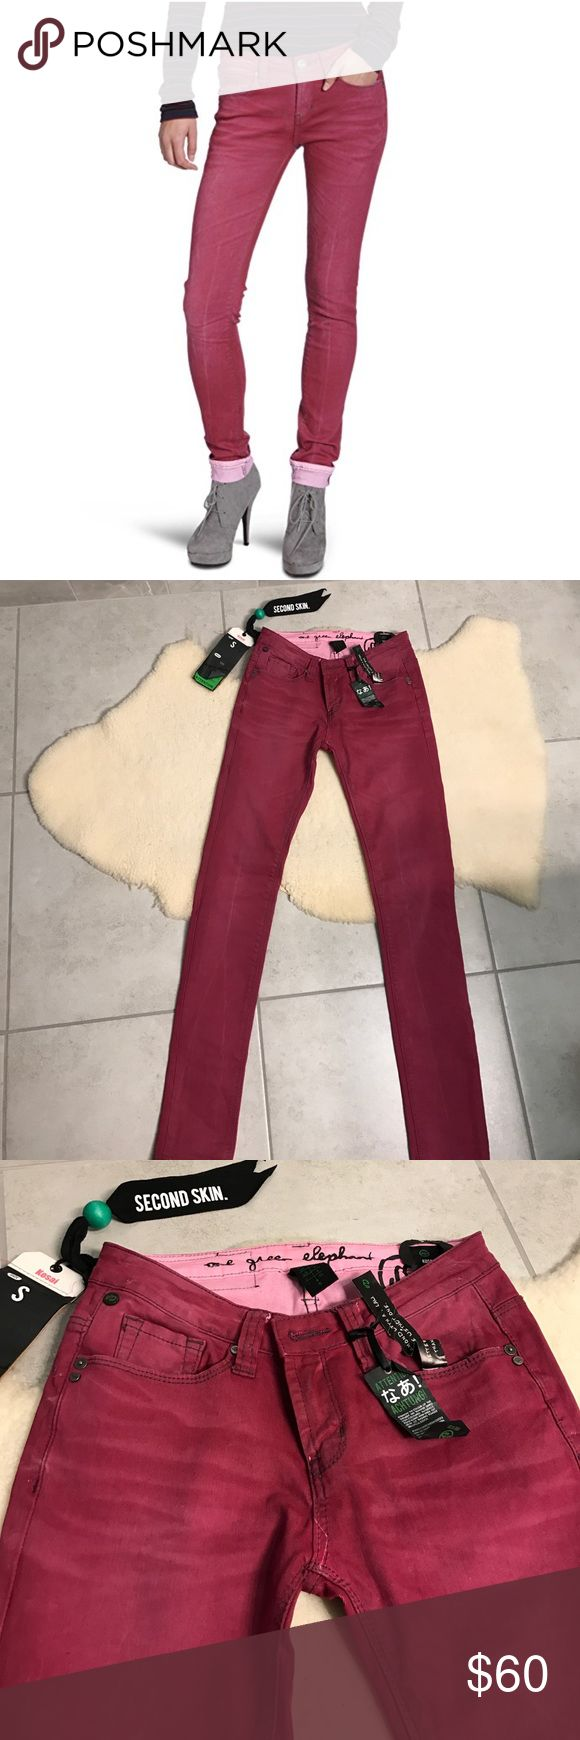 One Green Elephant jeans New, stylish jeans, size US 4. 98% cotton, 2% spandex One Green Elephant Jeans Skinny